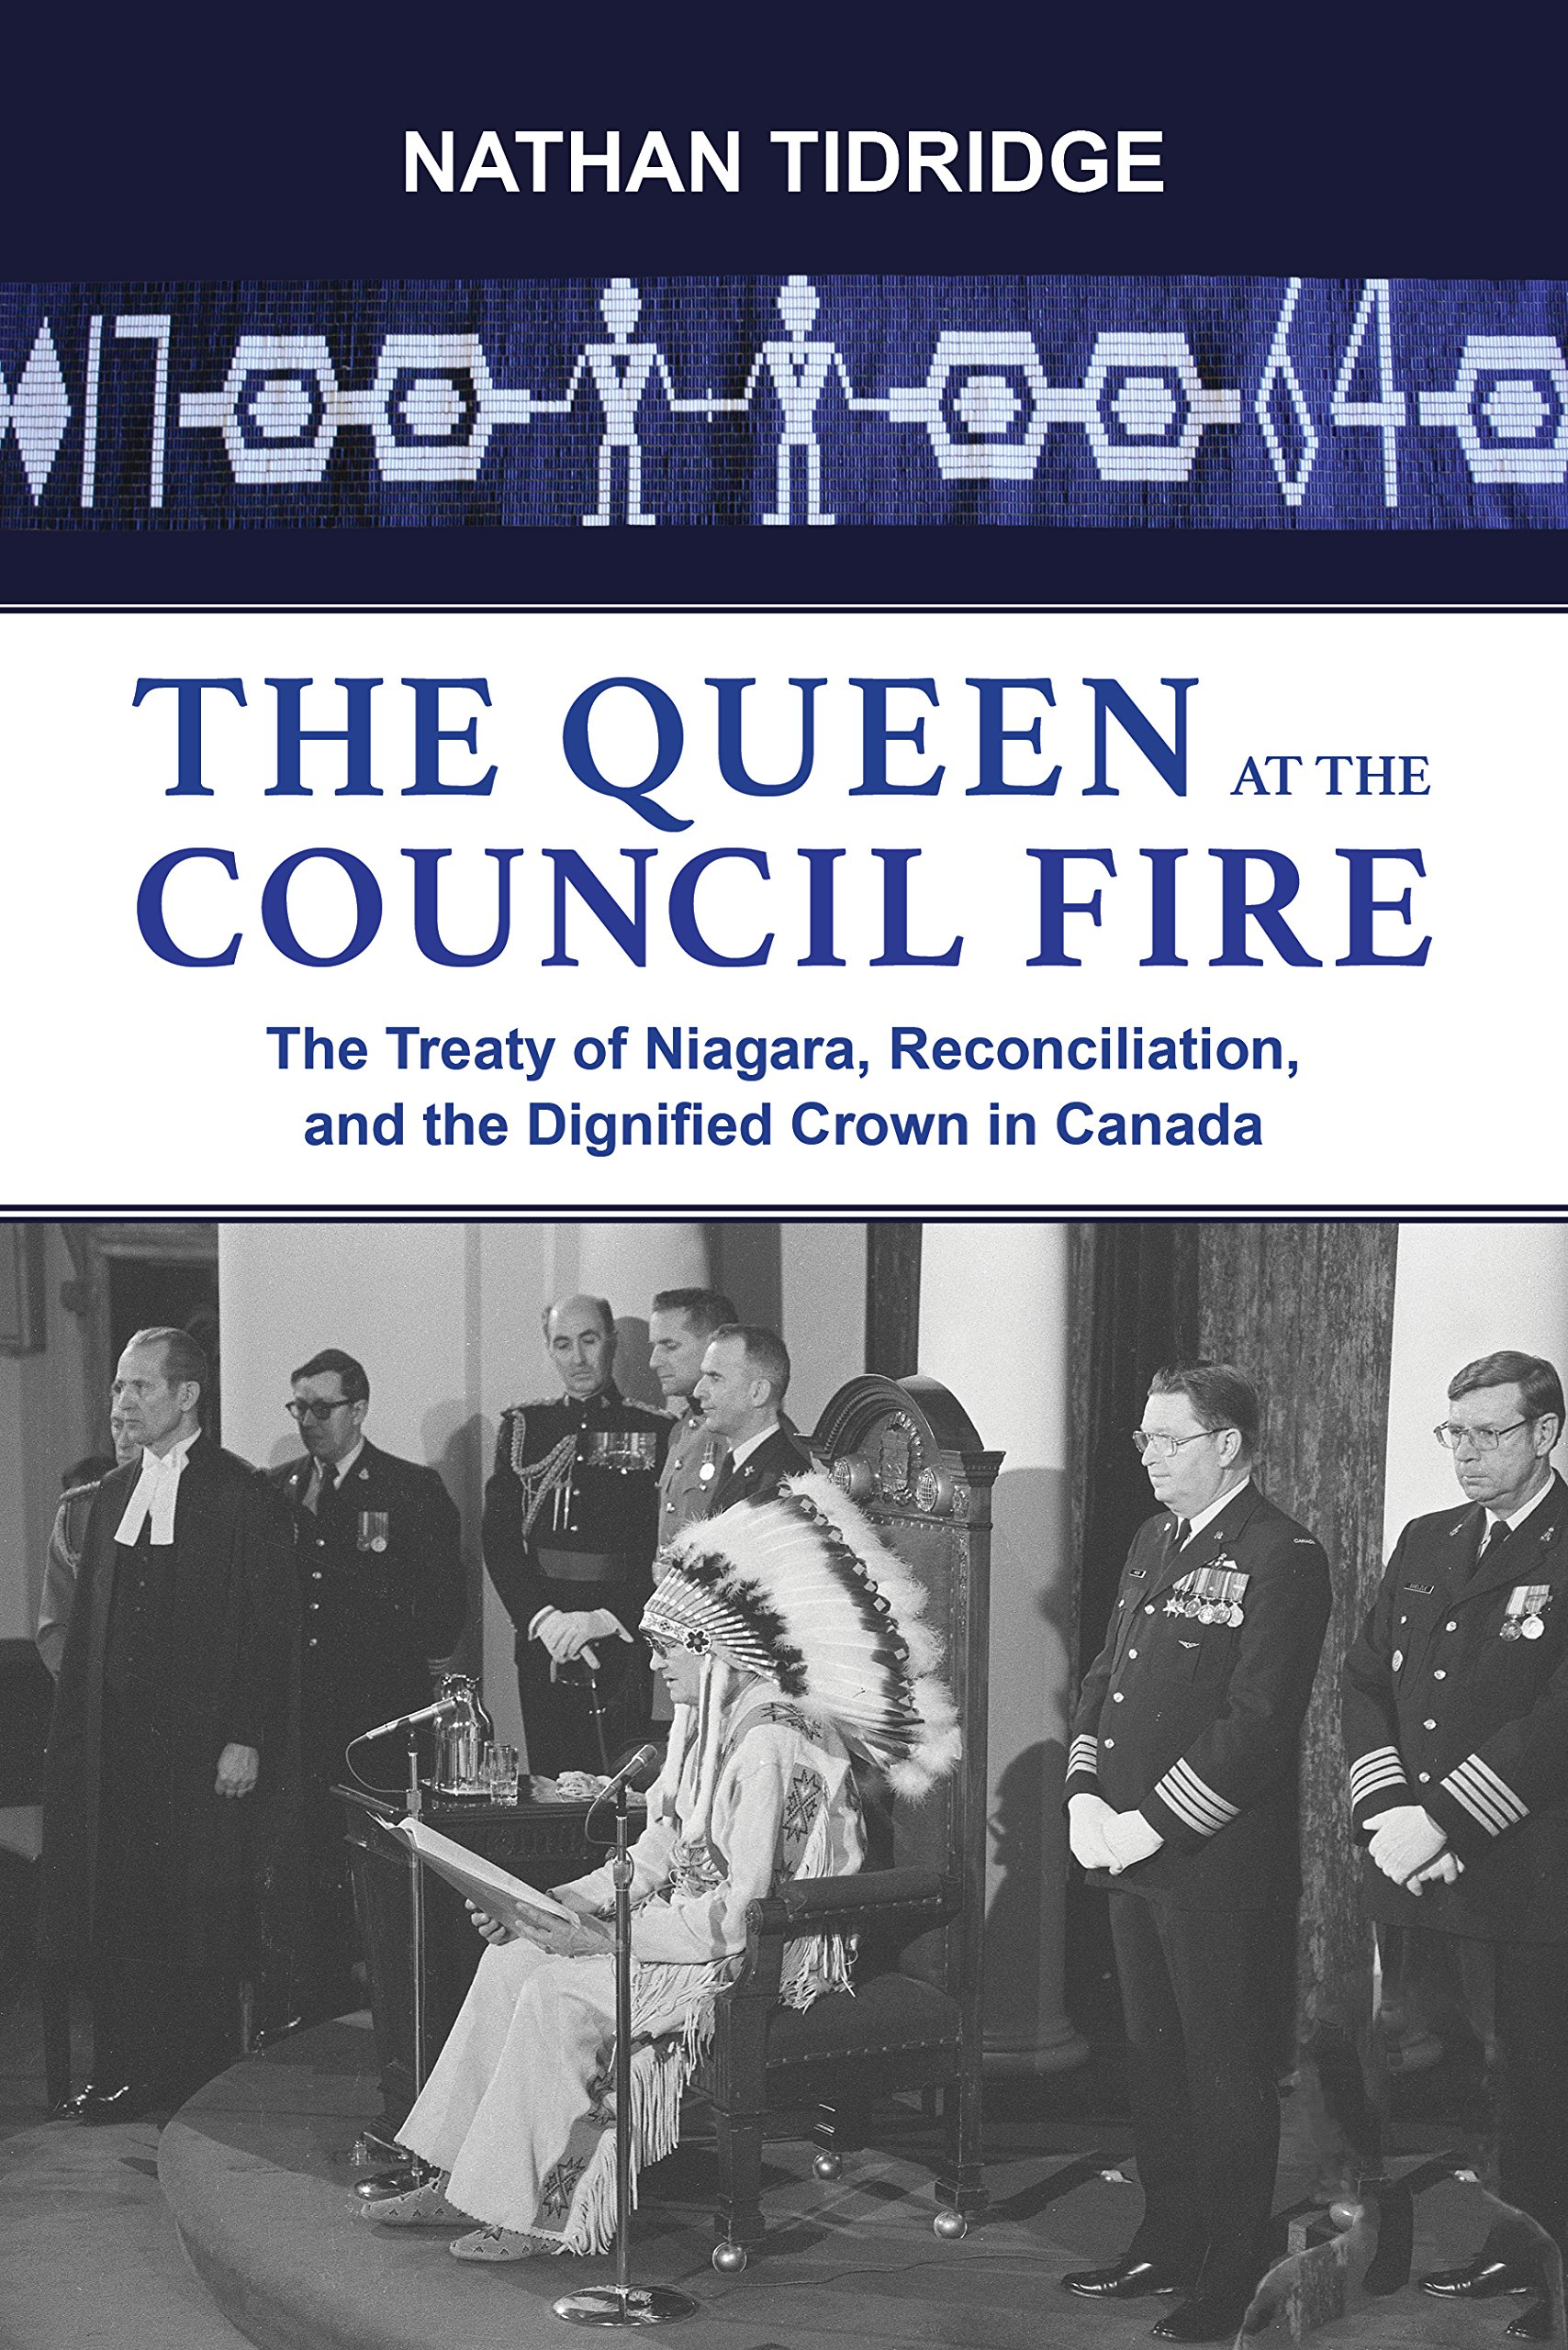 Read Online The Queen at the Council Fire: The Treaty of Niagara, Reconciliation, and the Dignified Crown in Canada (Institute for the Study of the Crown in Canada) pdf